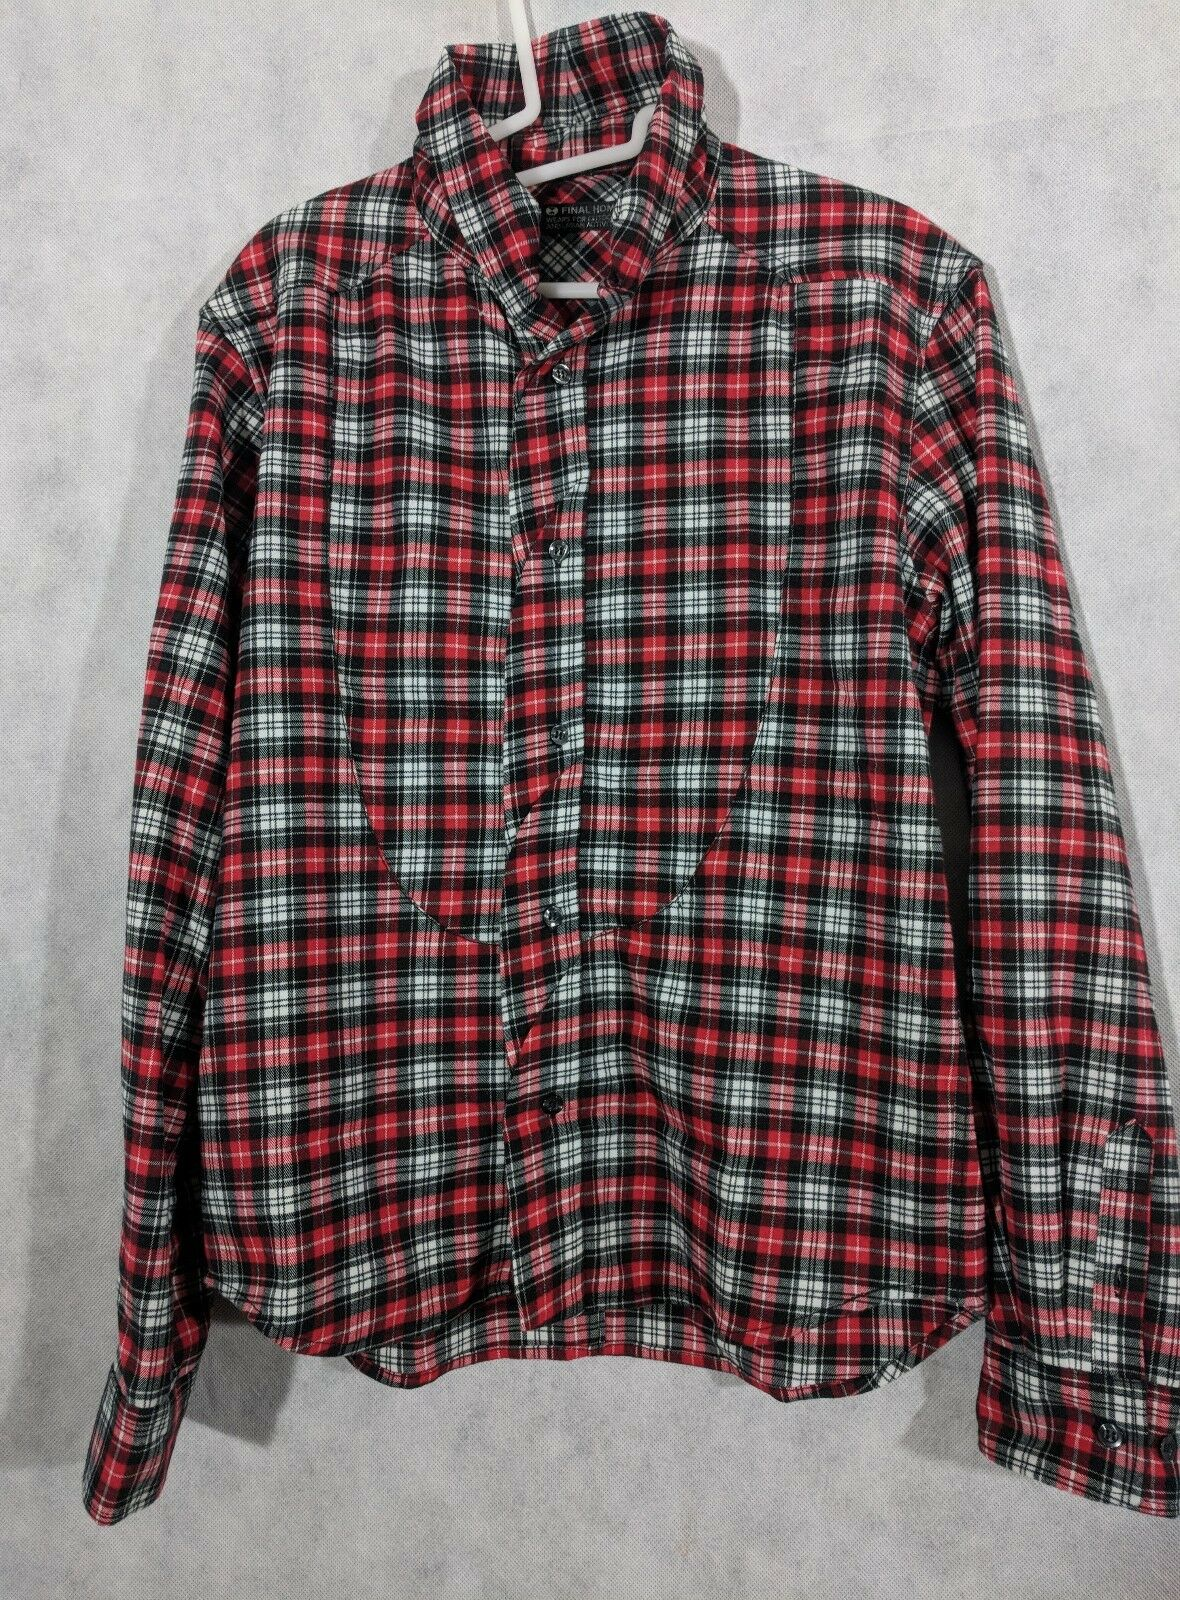 Final Home Flannel Deconstructed Seams Plaid Shirt Size Medium Issey Miyake